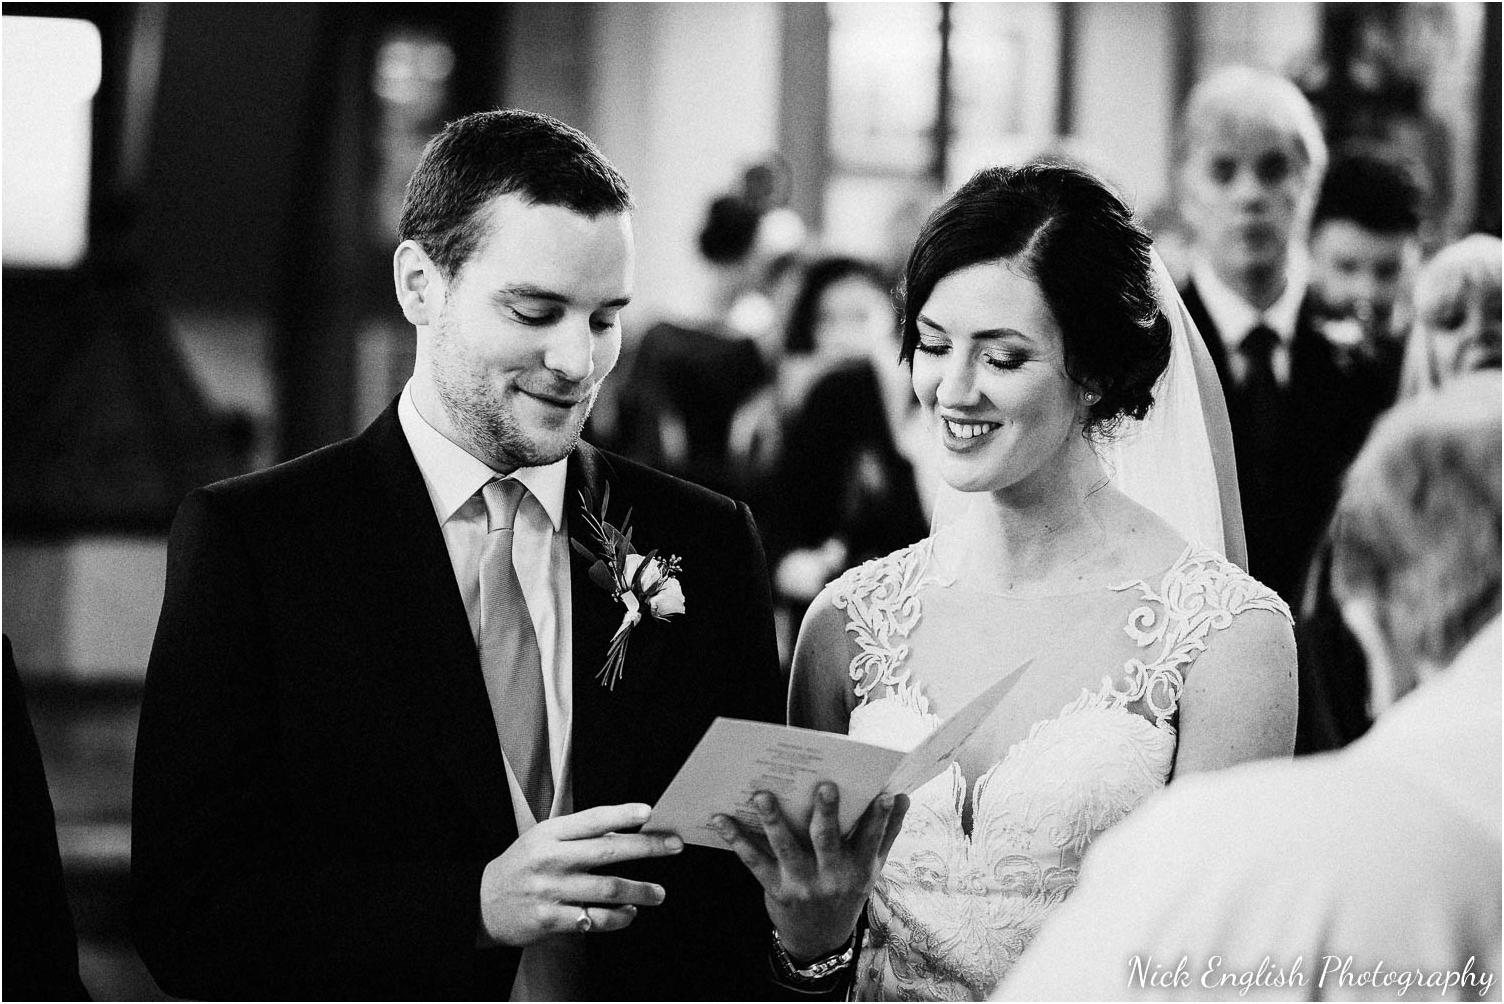 Mitton_Hall_Wedding_Photographer-36.jpg